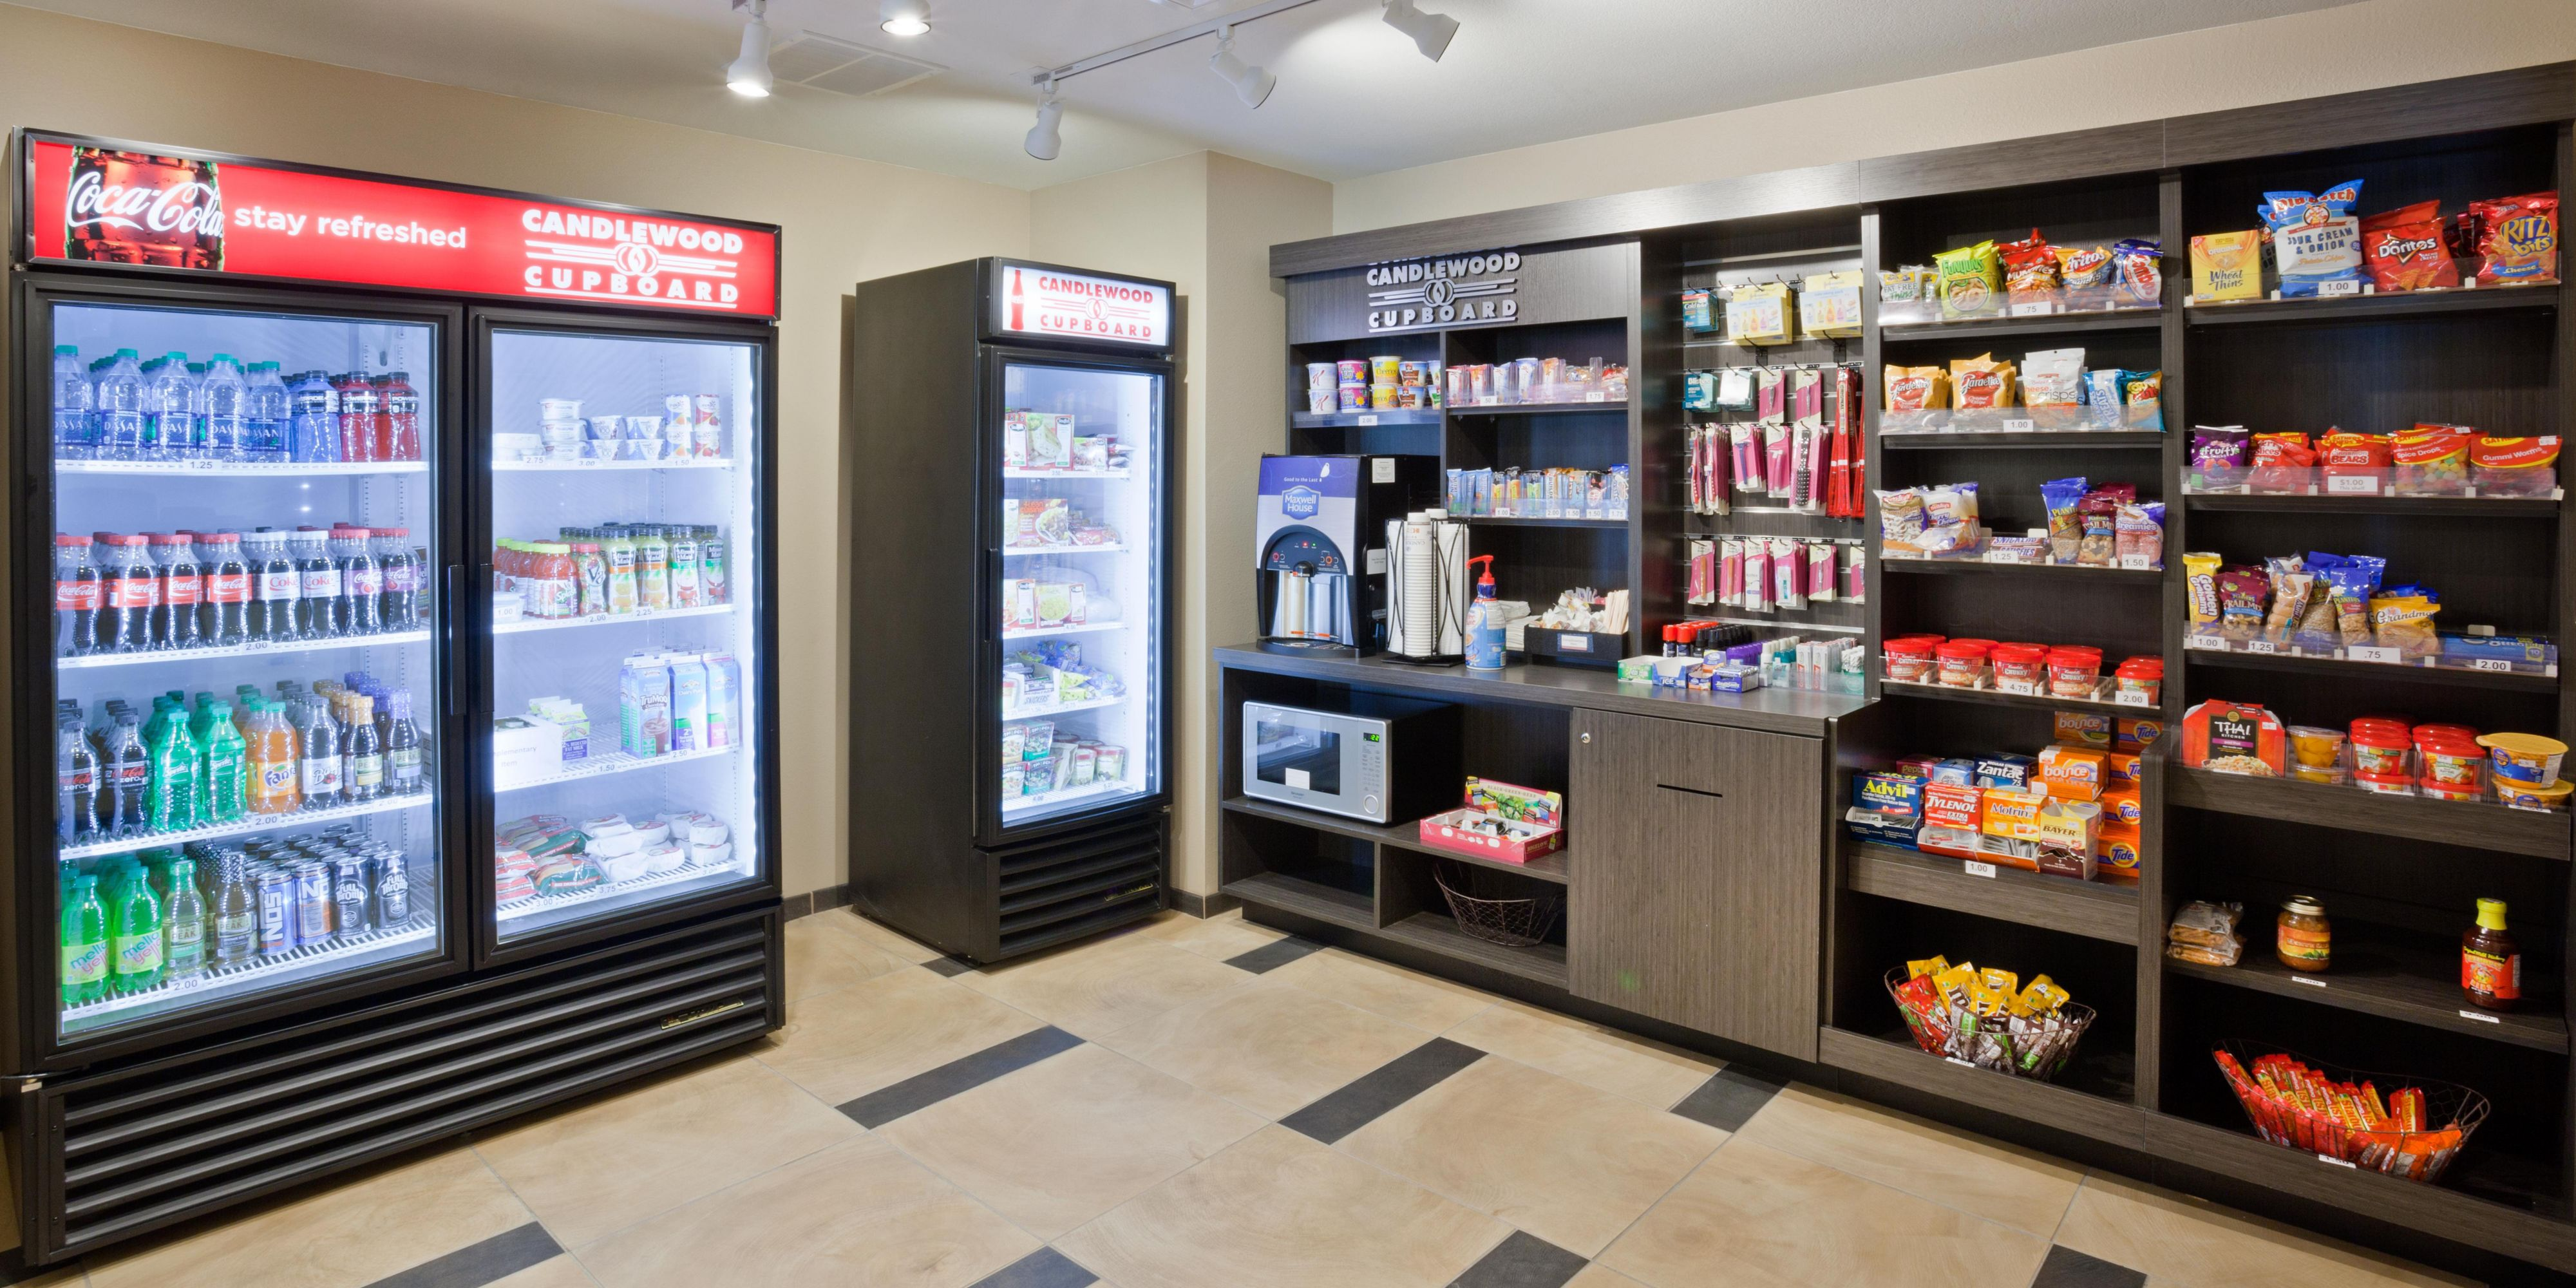 Furniture Stores In Dickinson Nd #17: Candlewood Cupboard - Candlewood Suites Dickinson ND